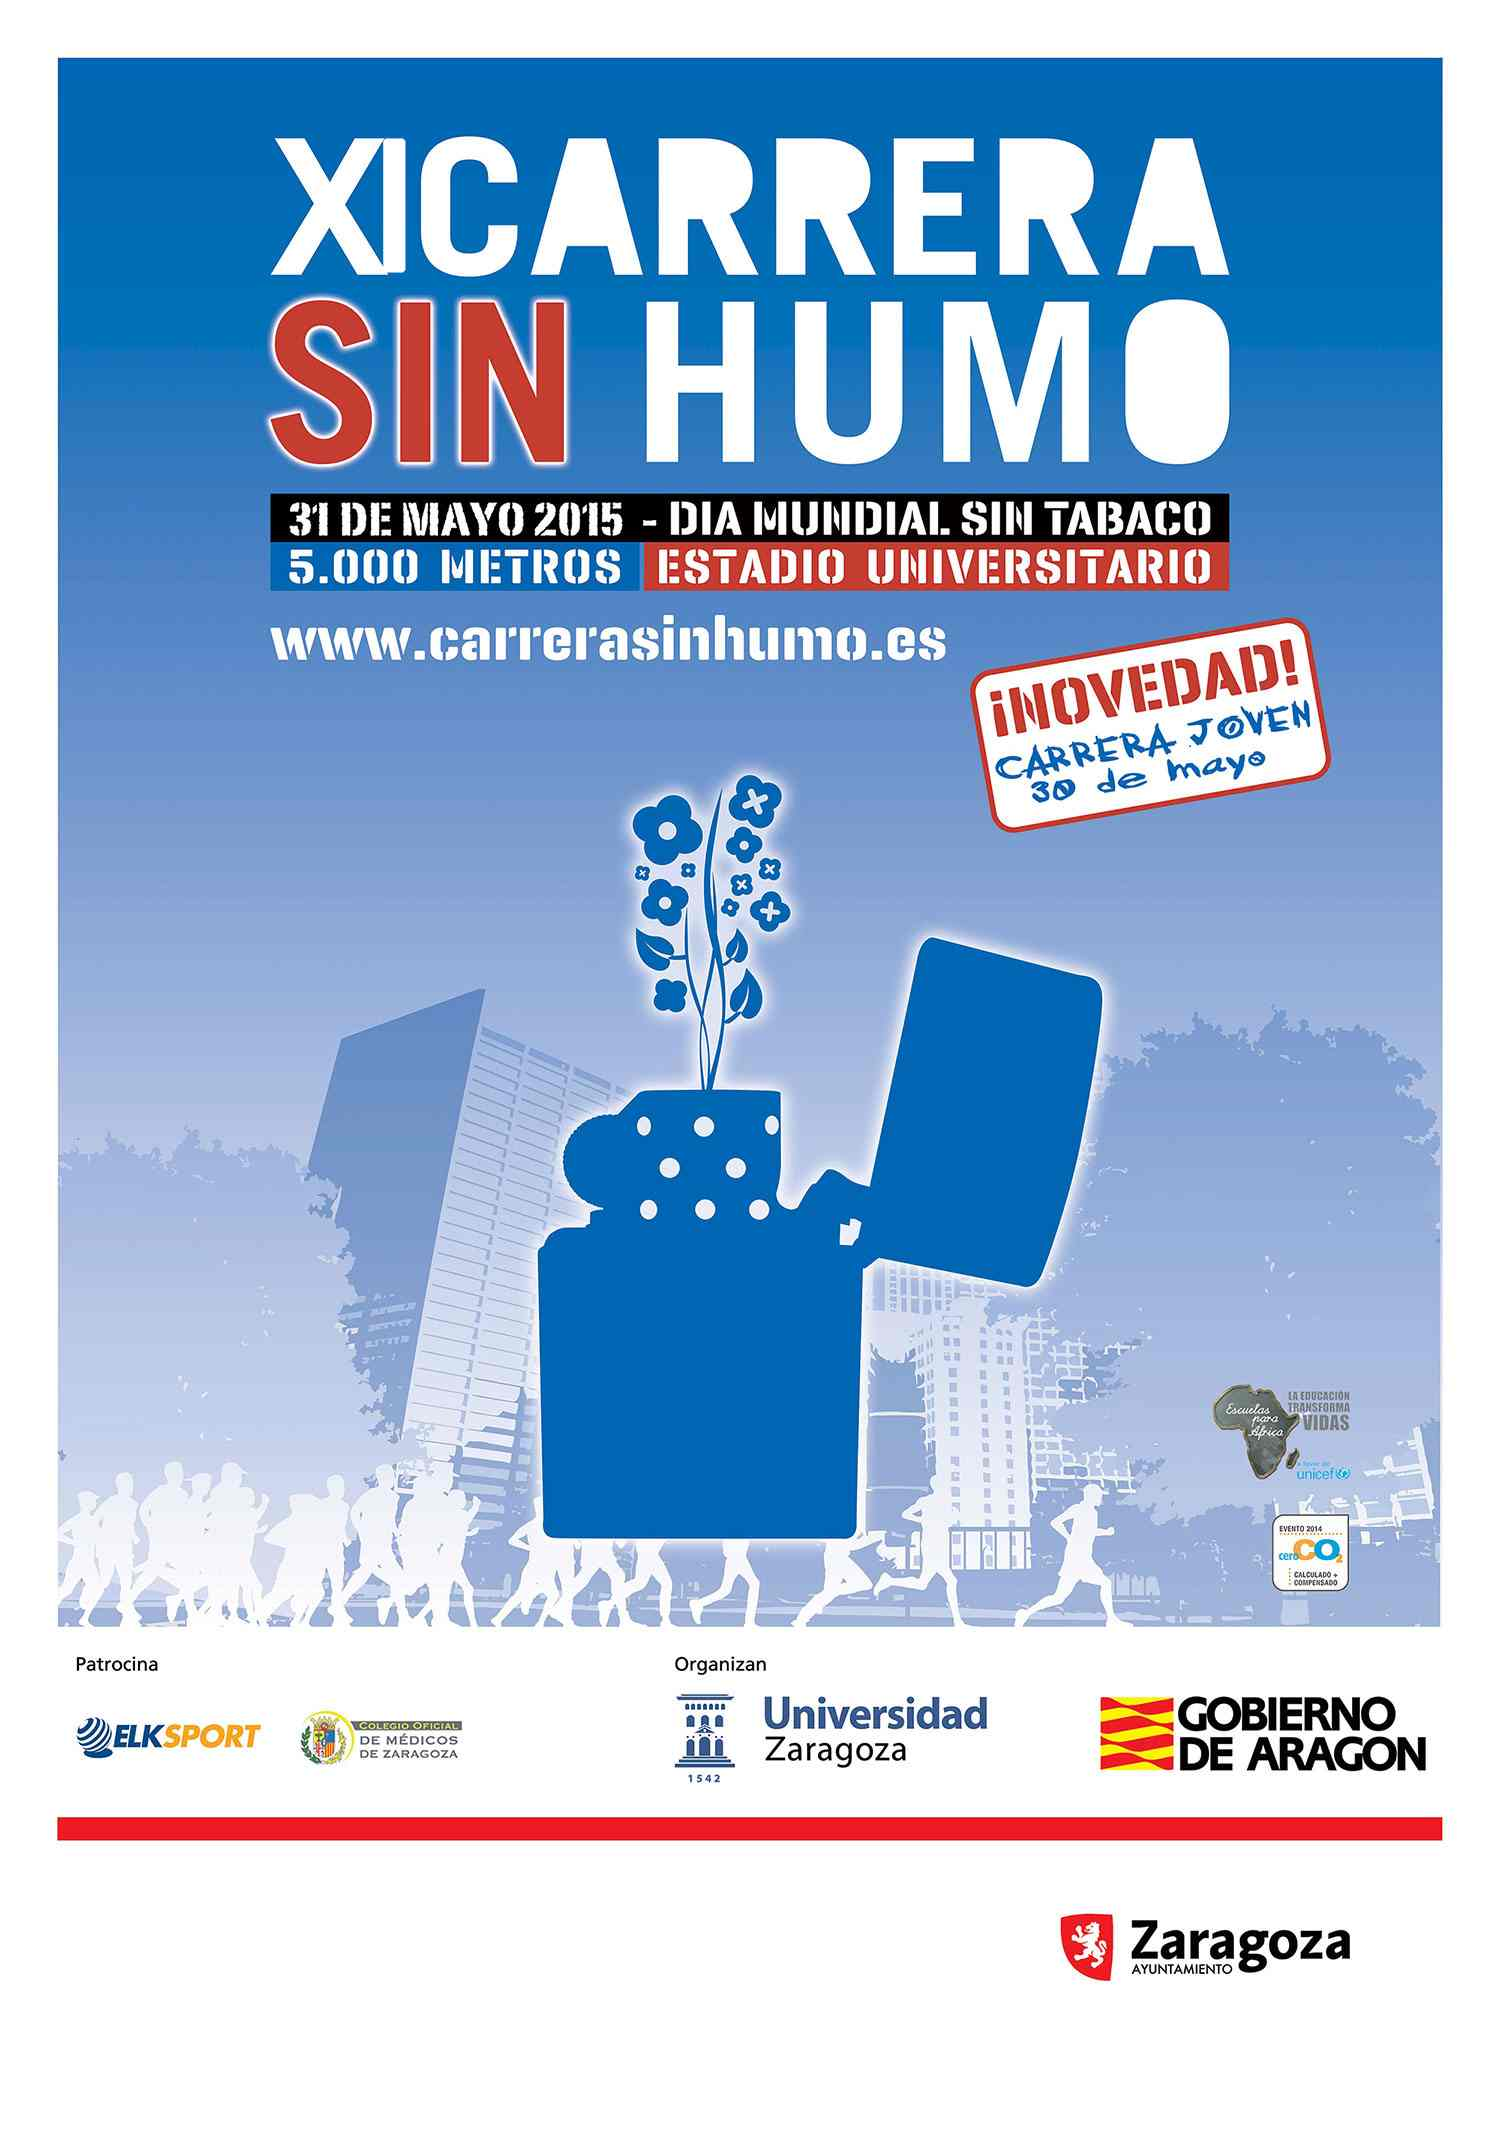 CARRERA SIN HUMO 2015 - Register